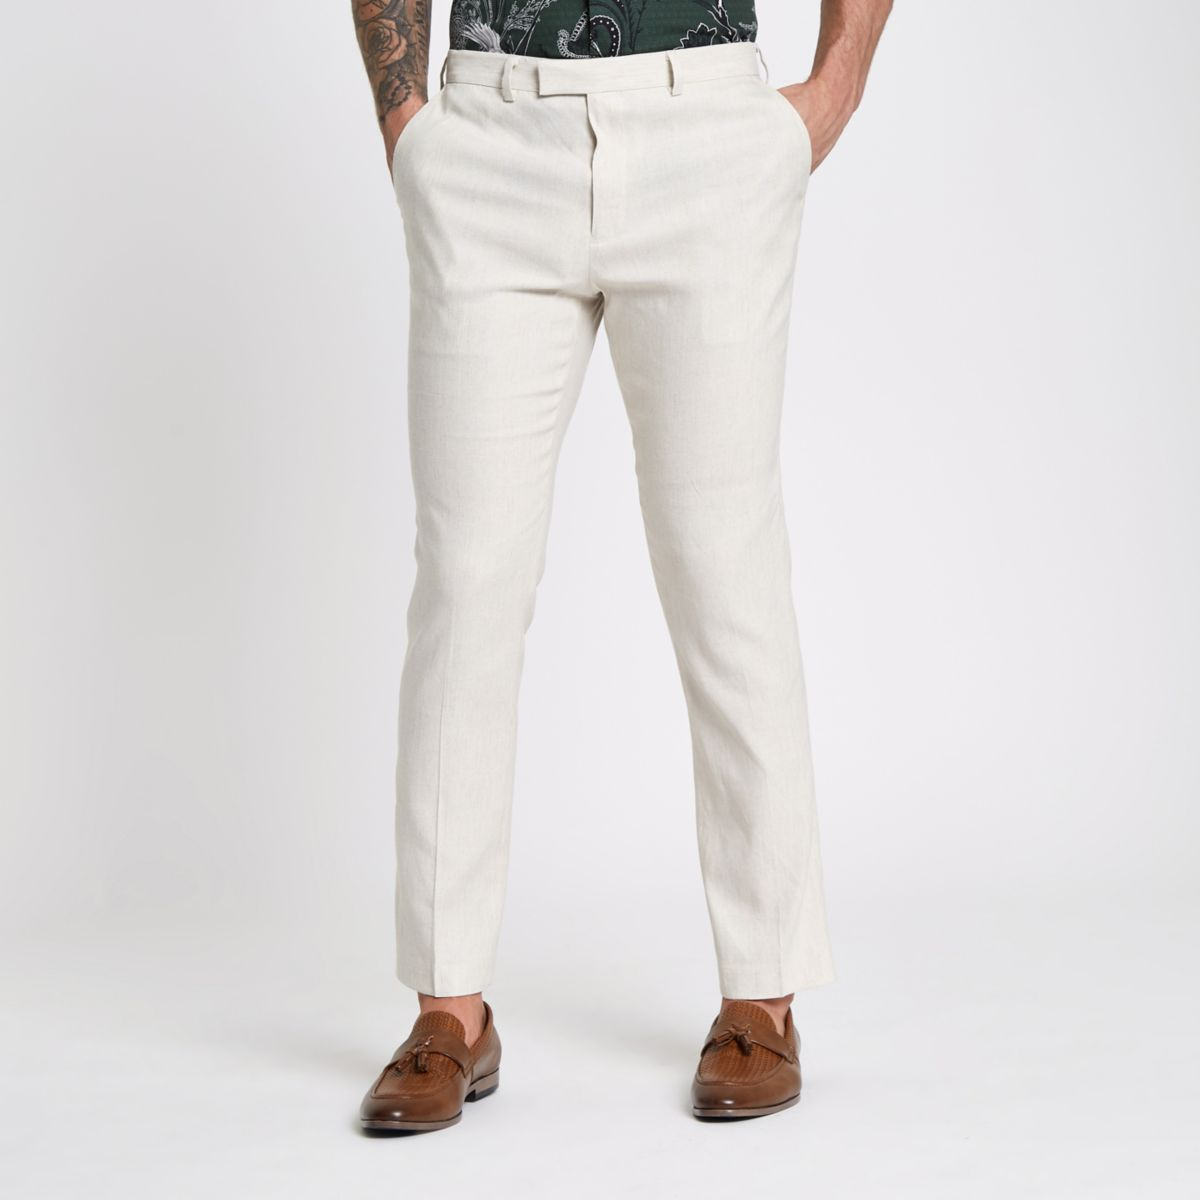 Linen Men's Clothing: forex-2016.ga - Your Online Men's Clothing Store! Get 5% in rewards with Club O! Overstock Anniversary Sale* Save on decor. Spooky Savings Event. Up to 70% off. Cozy Home Event* Perry Ellis Portfolio Mens Dress Pants Linen Blend Classic Fit.